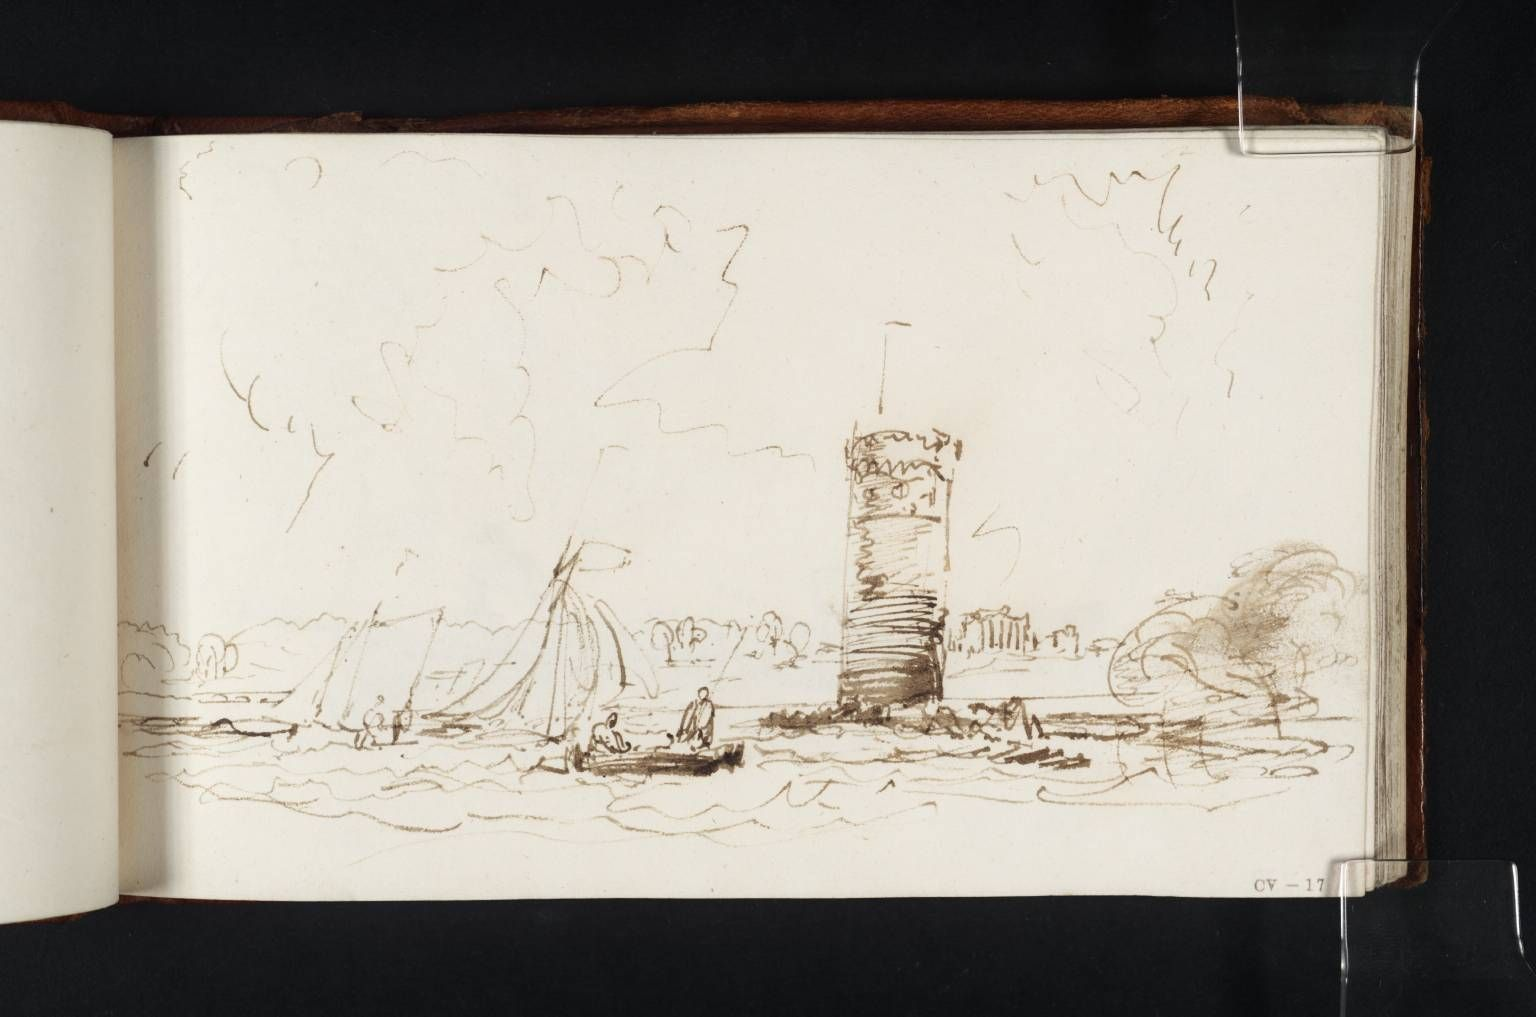 Joseph Mallord William Turner's sketch book image, 'Tabley House ...